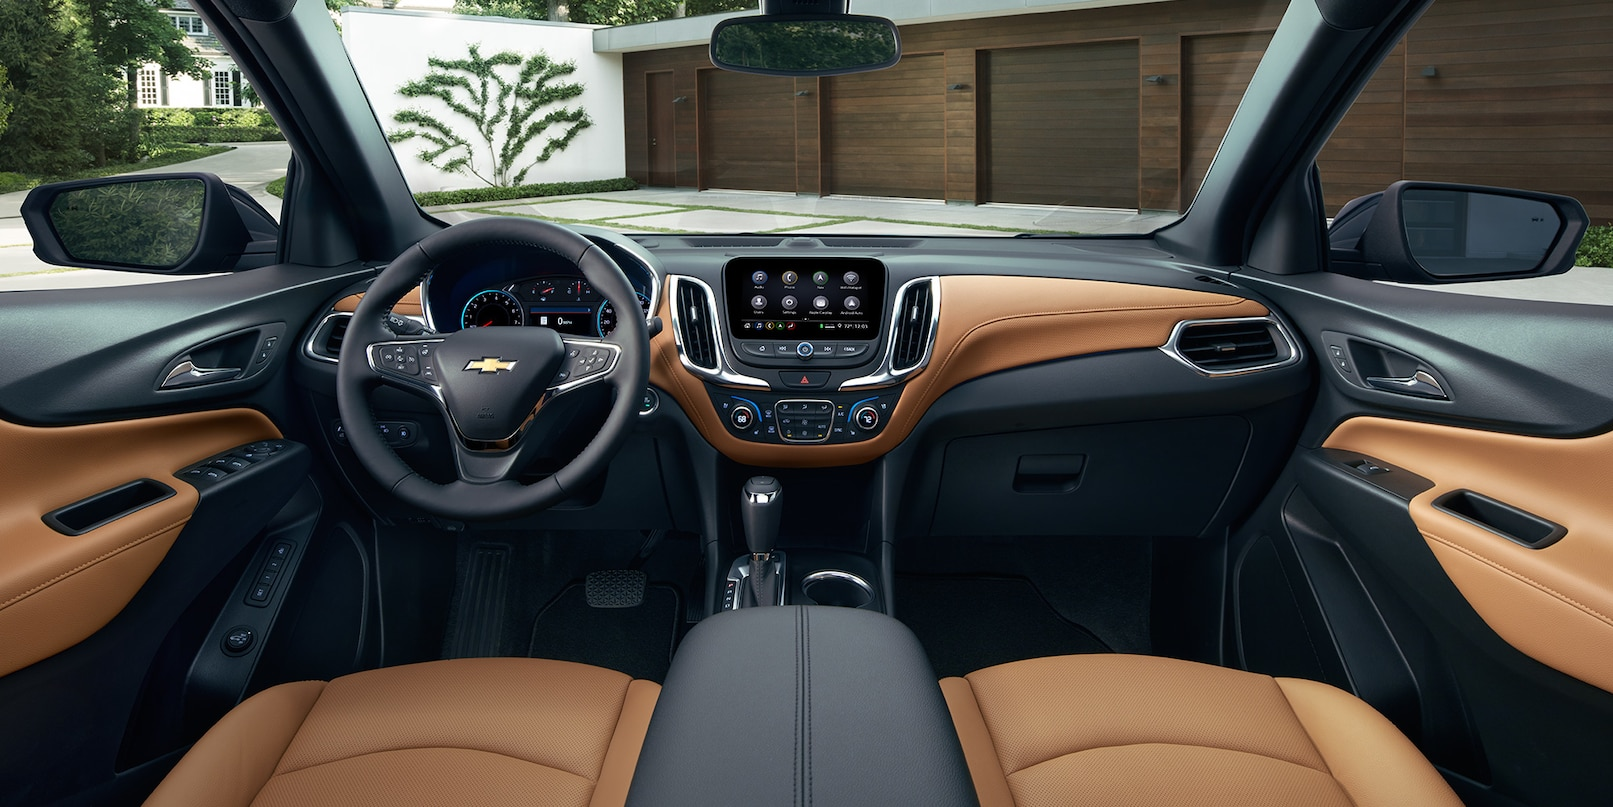 hight resolution of interior of the 2019 chevrolet equinox